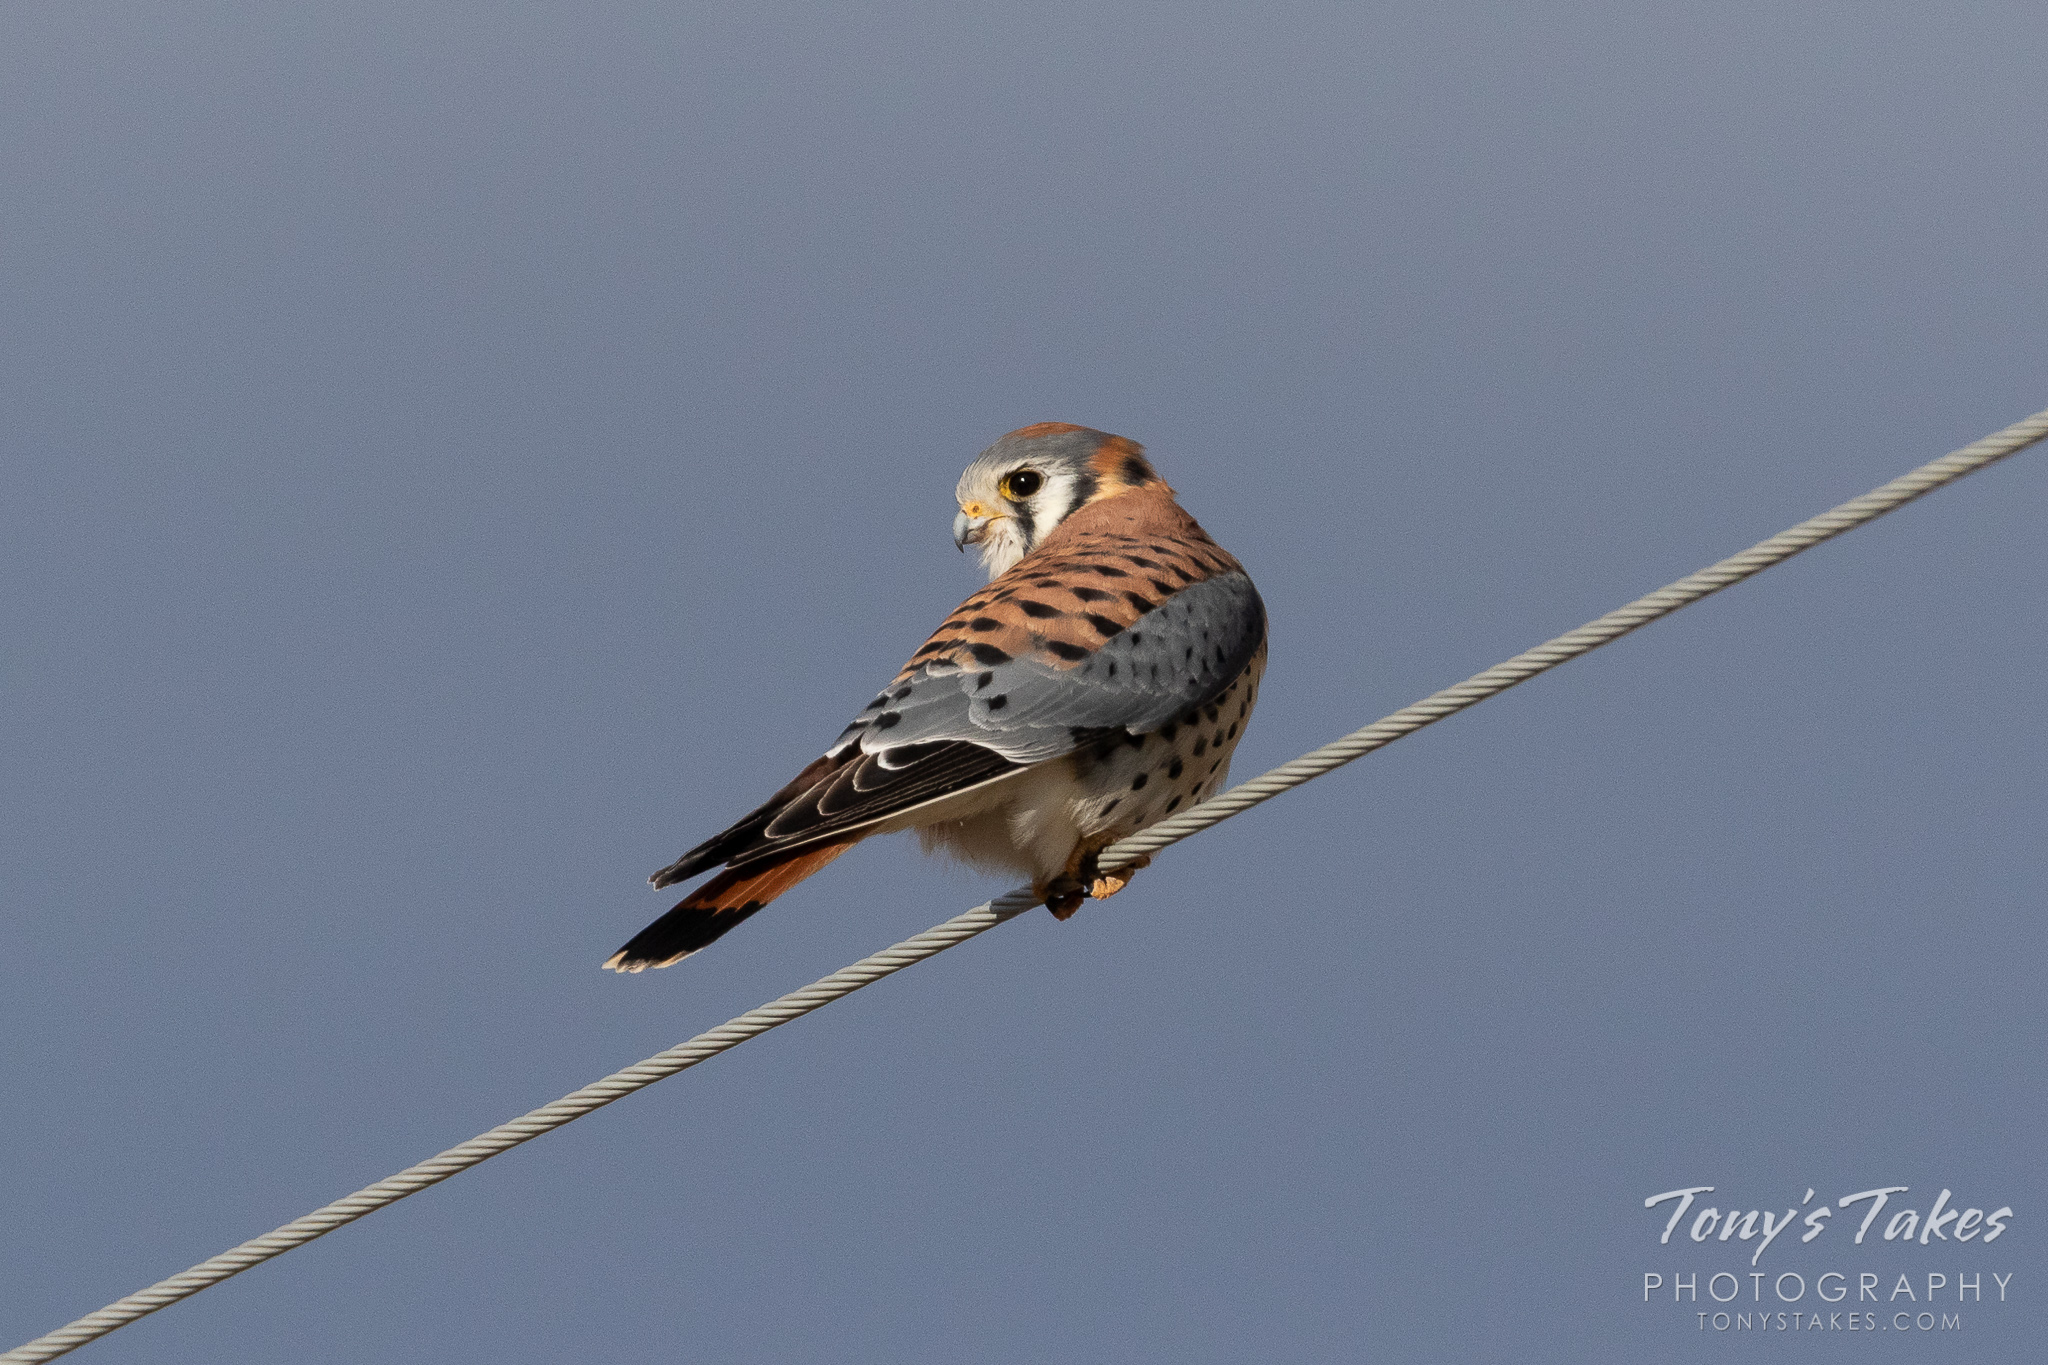 A male American kestrel hangs out on a wire in northern Colorado. (© Tony's Takes)